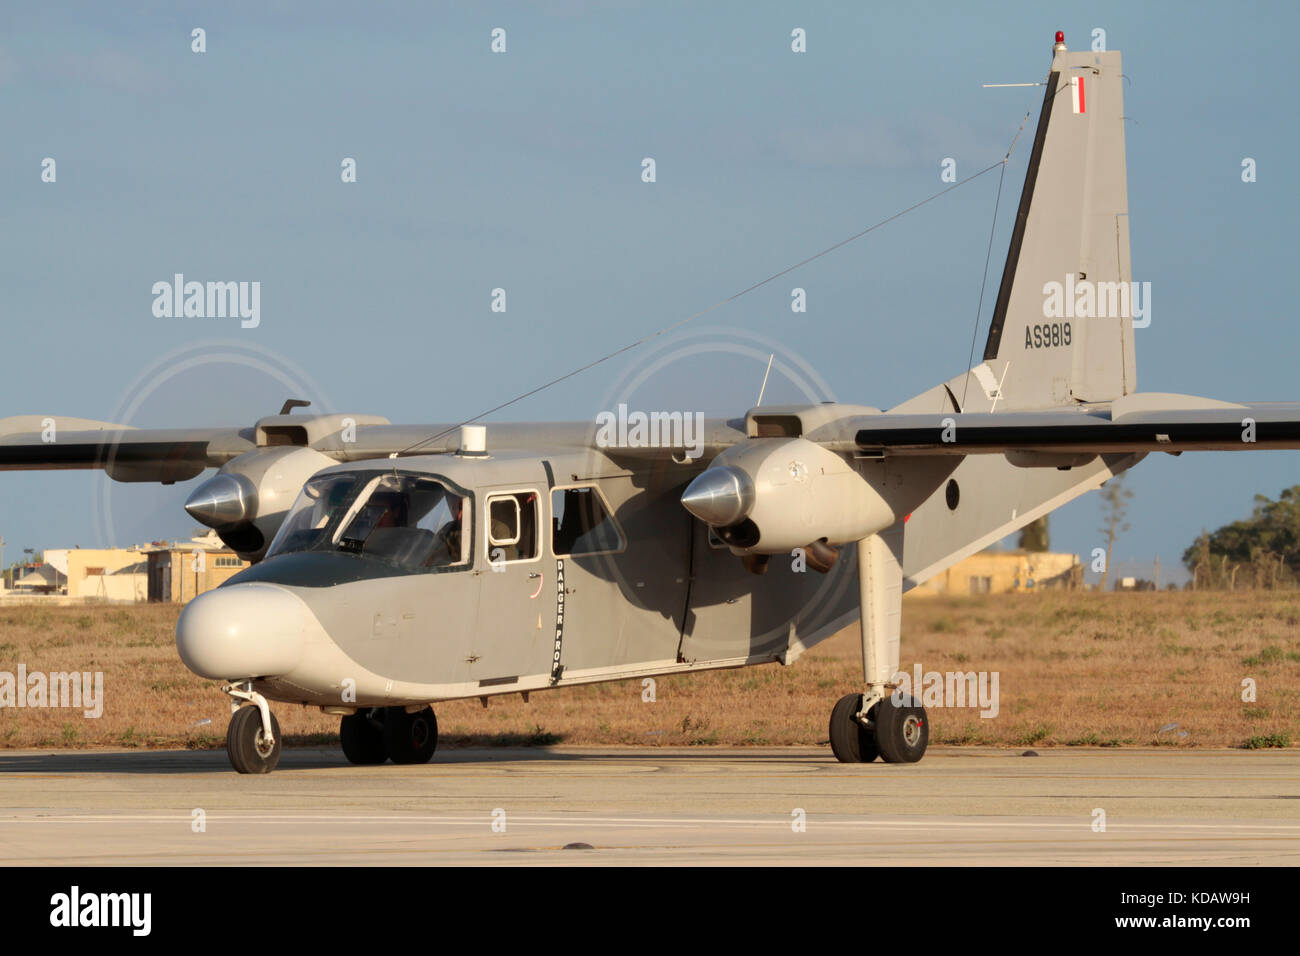 Britten-Norman Islander twin-engined maritime patrol aircraft of the Armed Forces of Malta starting up - Stock Image